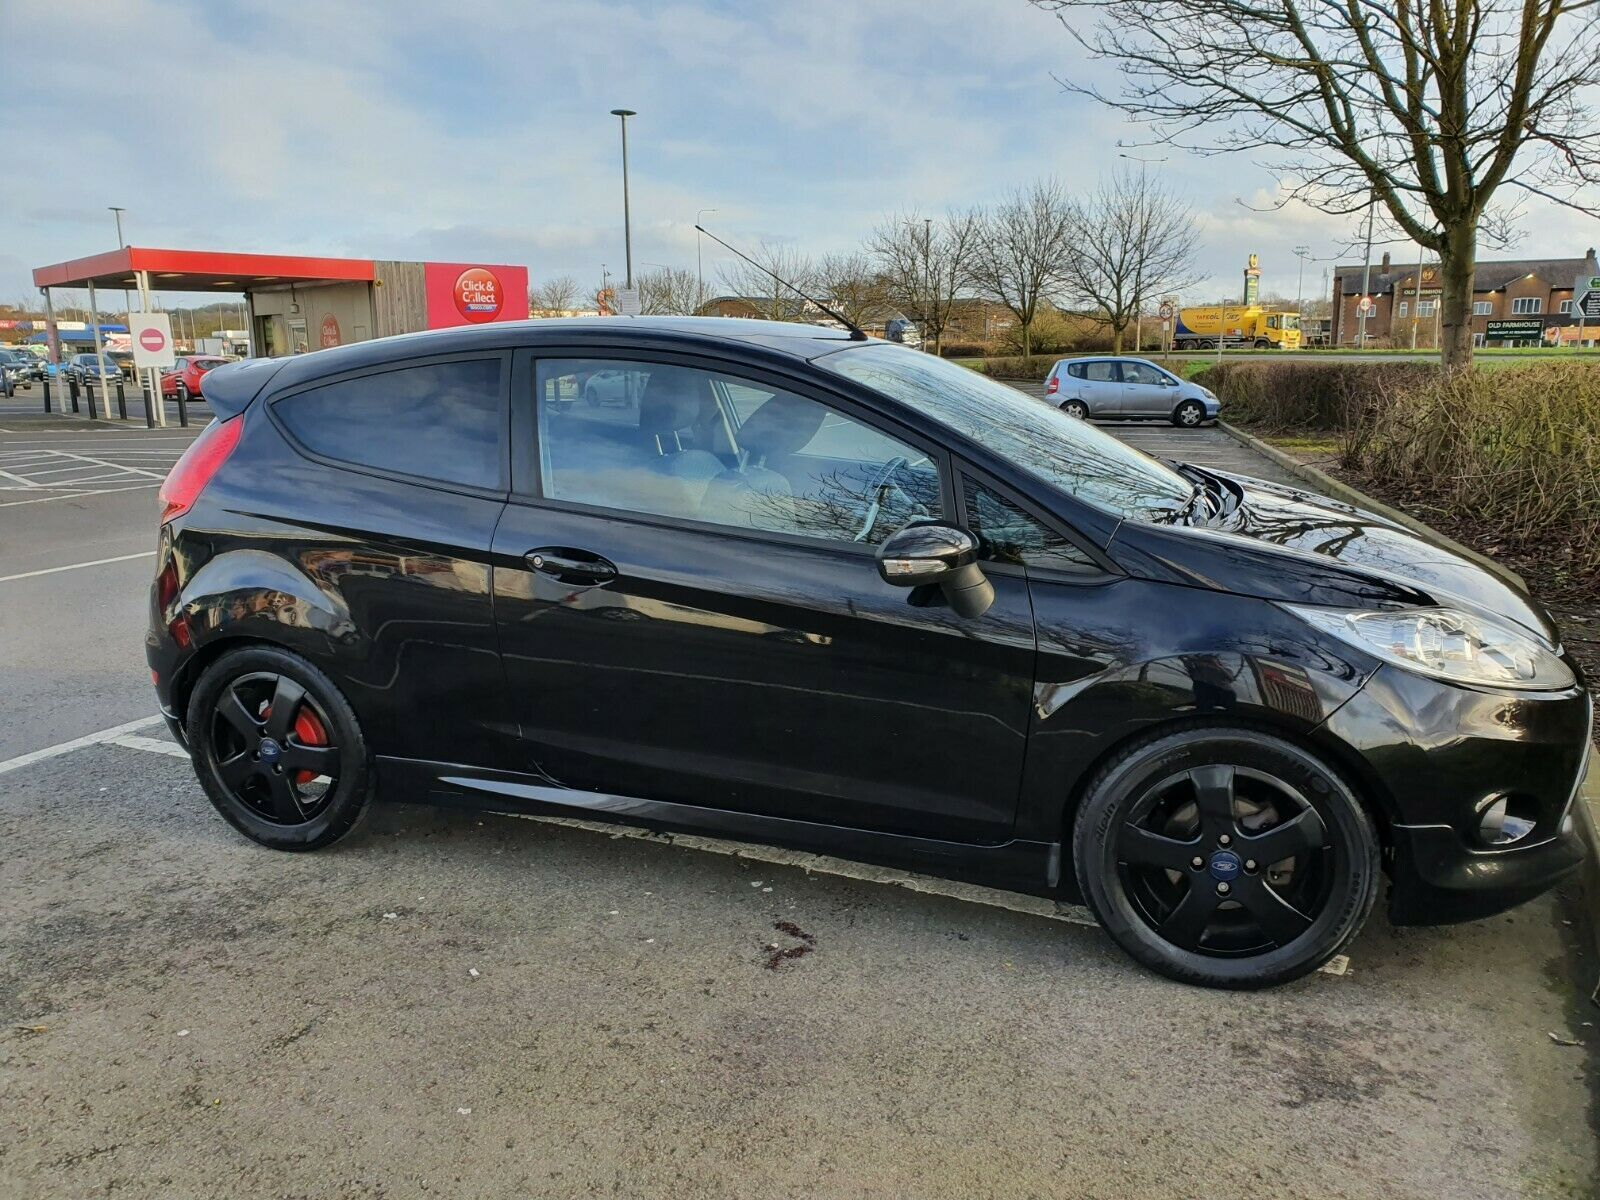 Zetec S Ford Fiesta Zetec S Car Ford